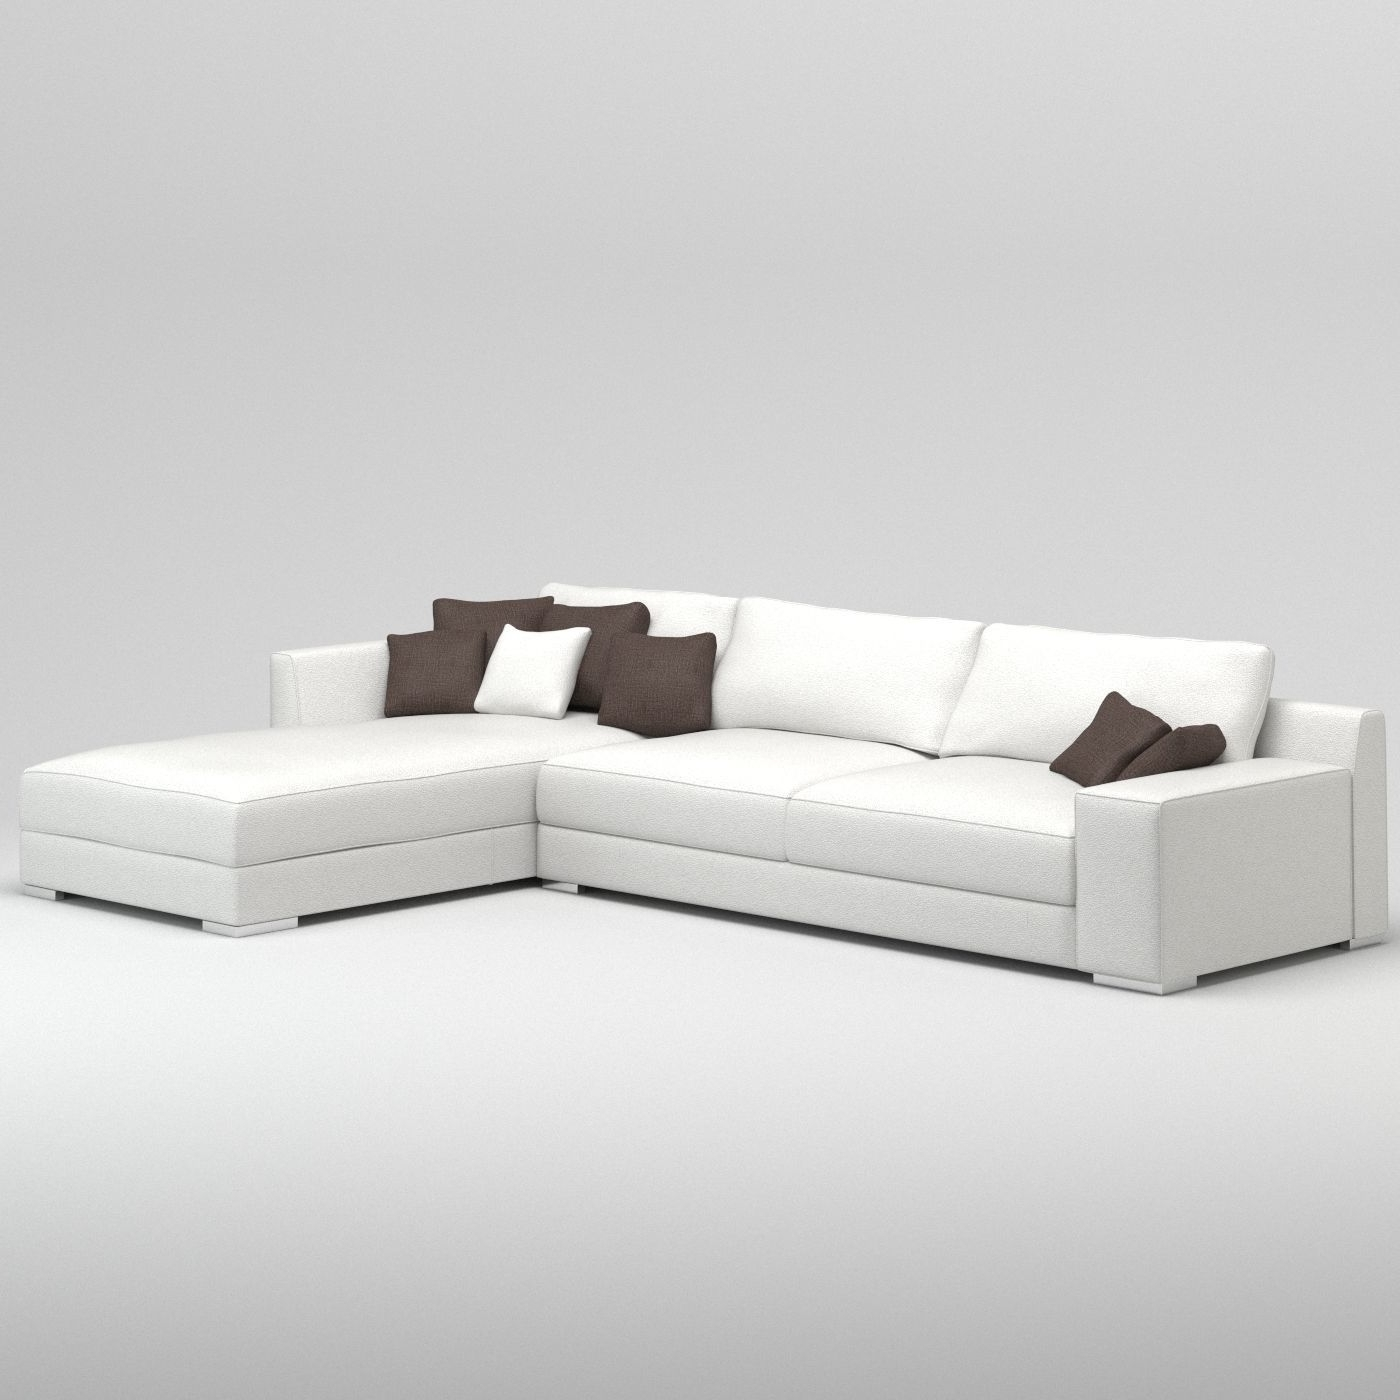 Current Furniture : Couchtuner Queen Sugar Sectional Sofa Greenville Sc Intended For Greenville Sc Sectional Sofas (View 9 of 15)